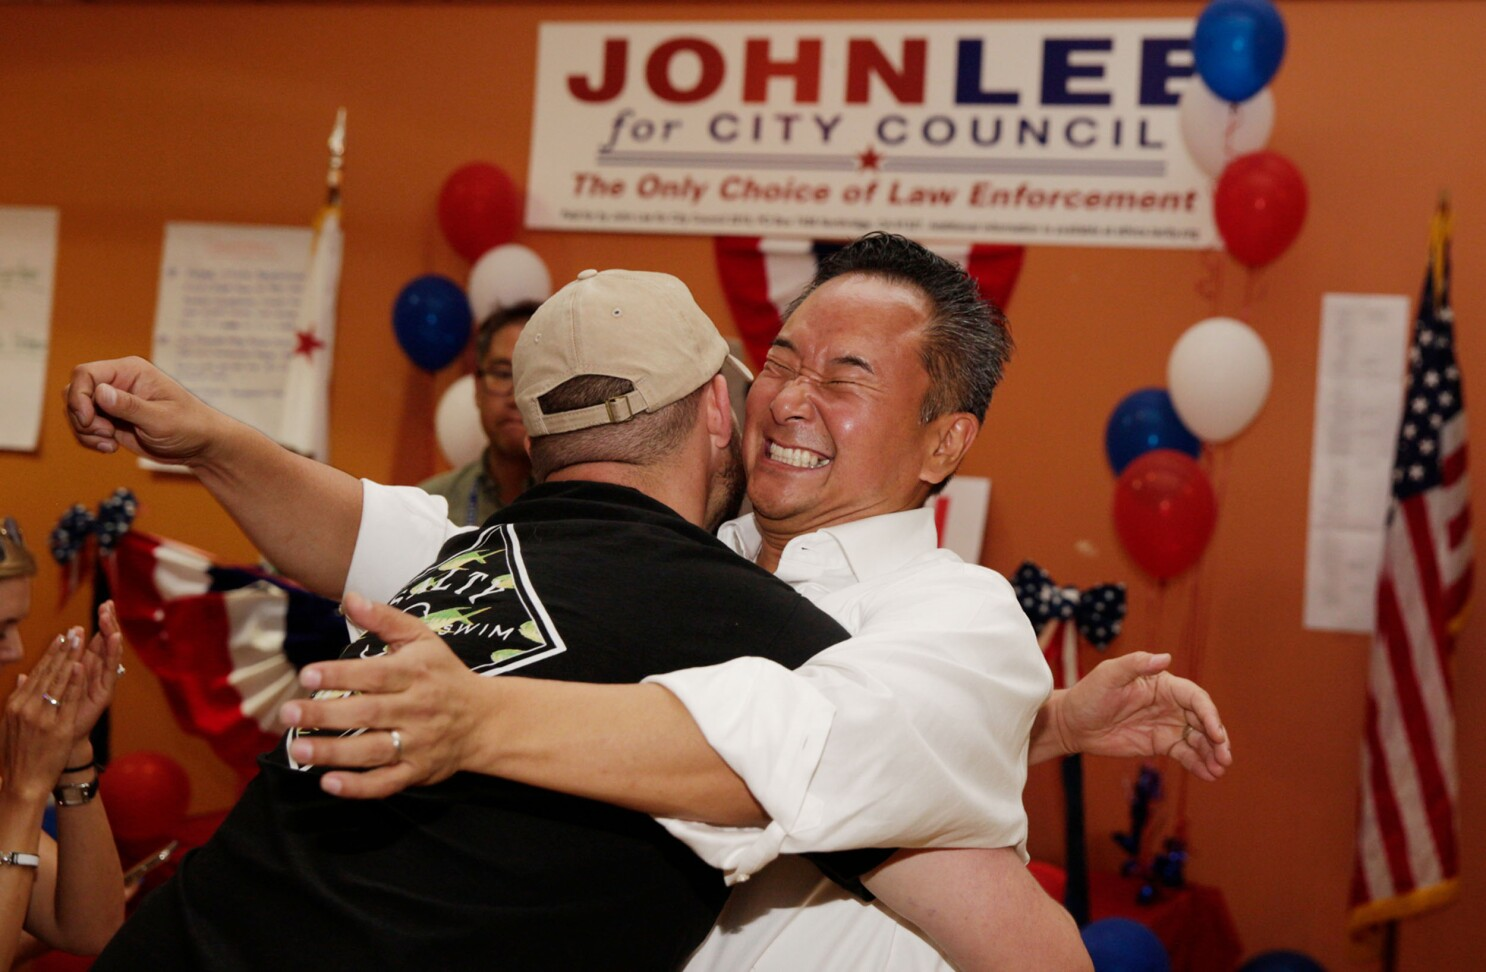 Insider Lee prevails over Lundquist in L.A. City Council race